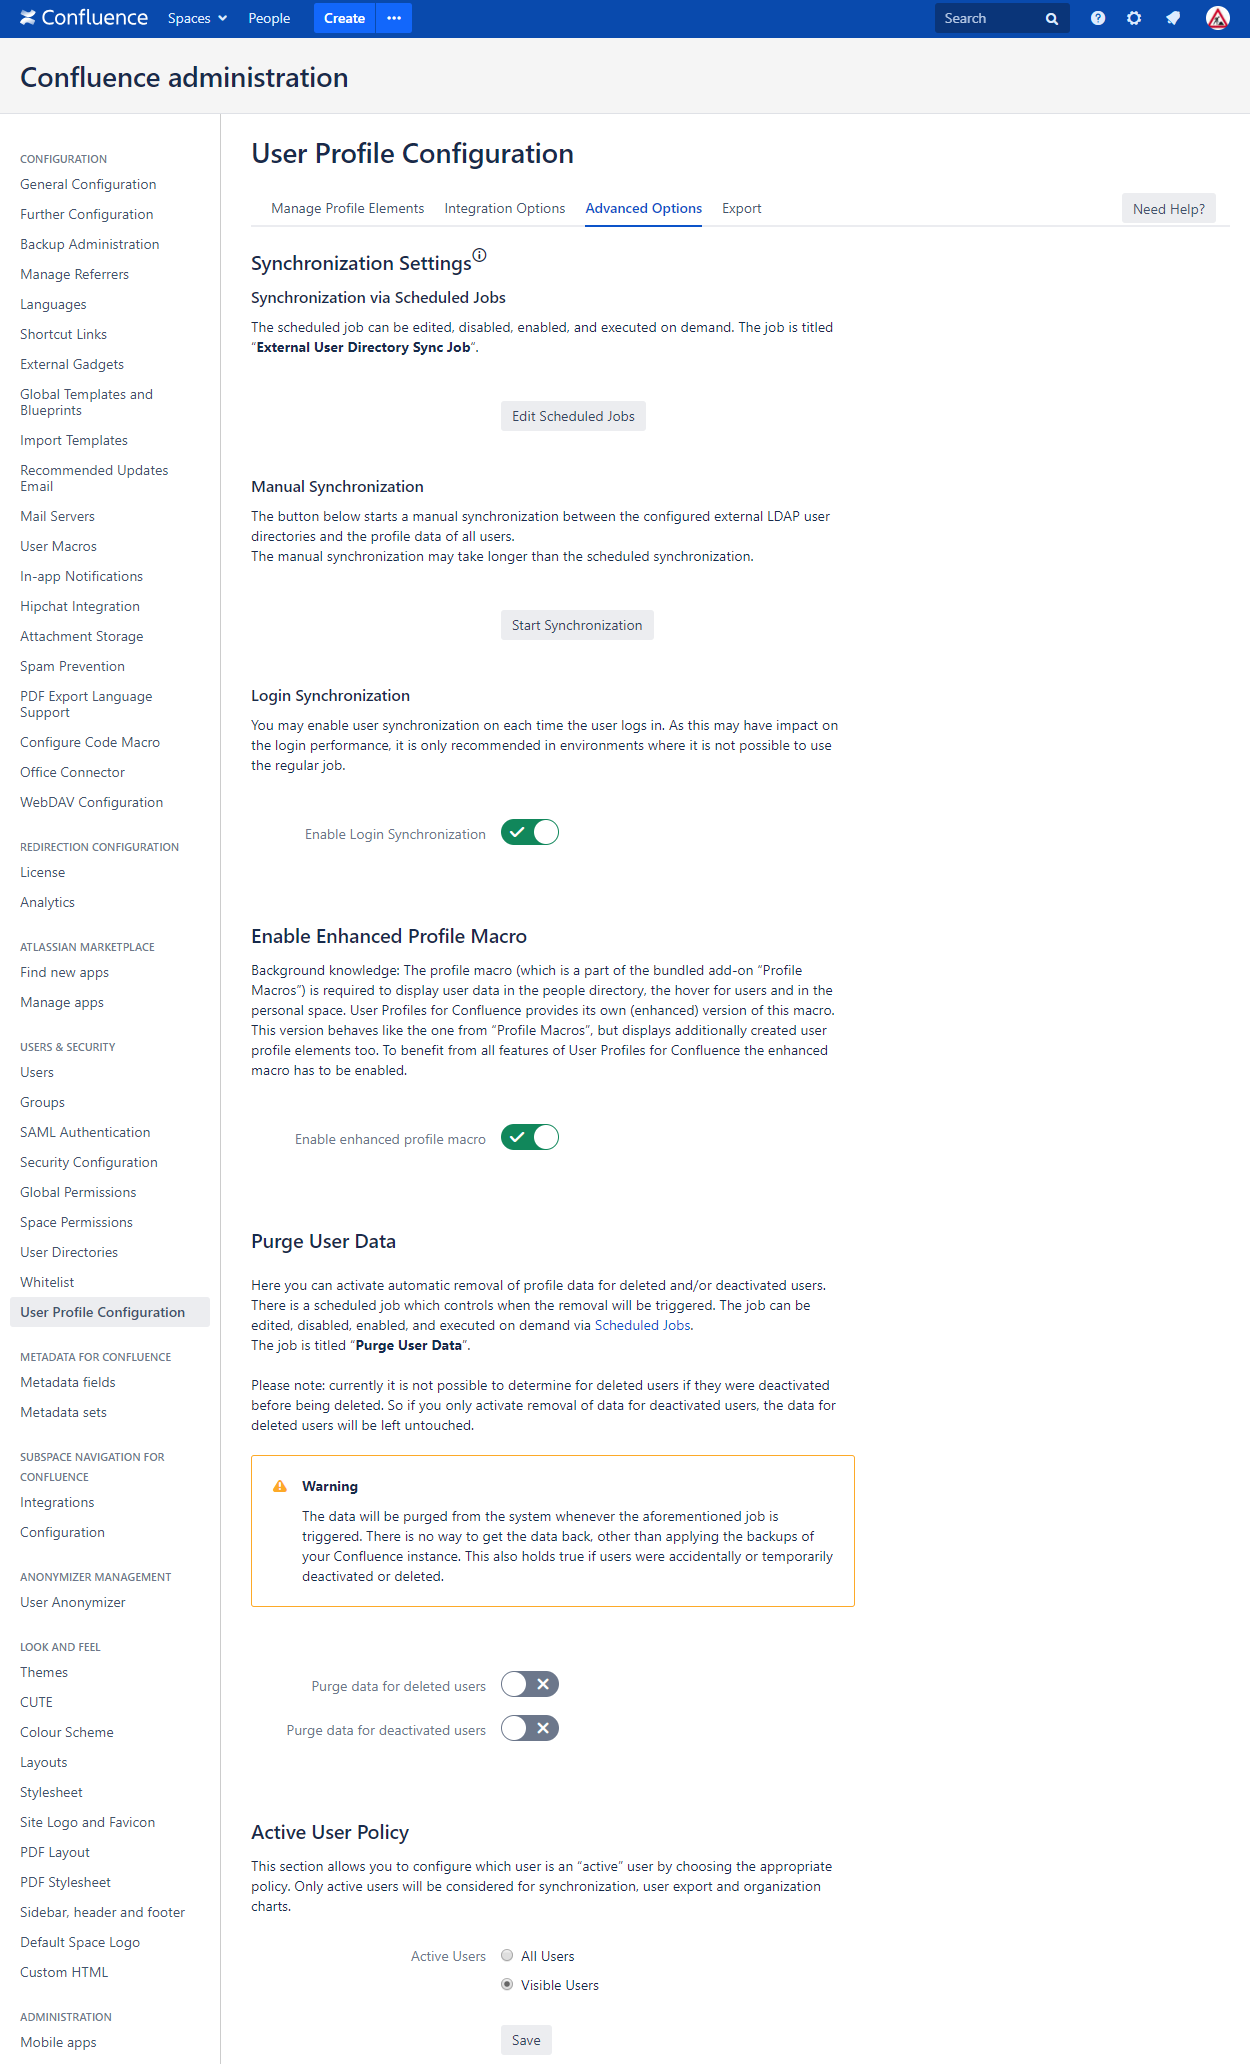 Advanced Configuration User Profiles for Confluence 3.0